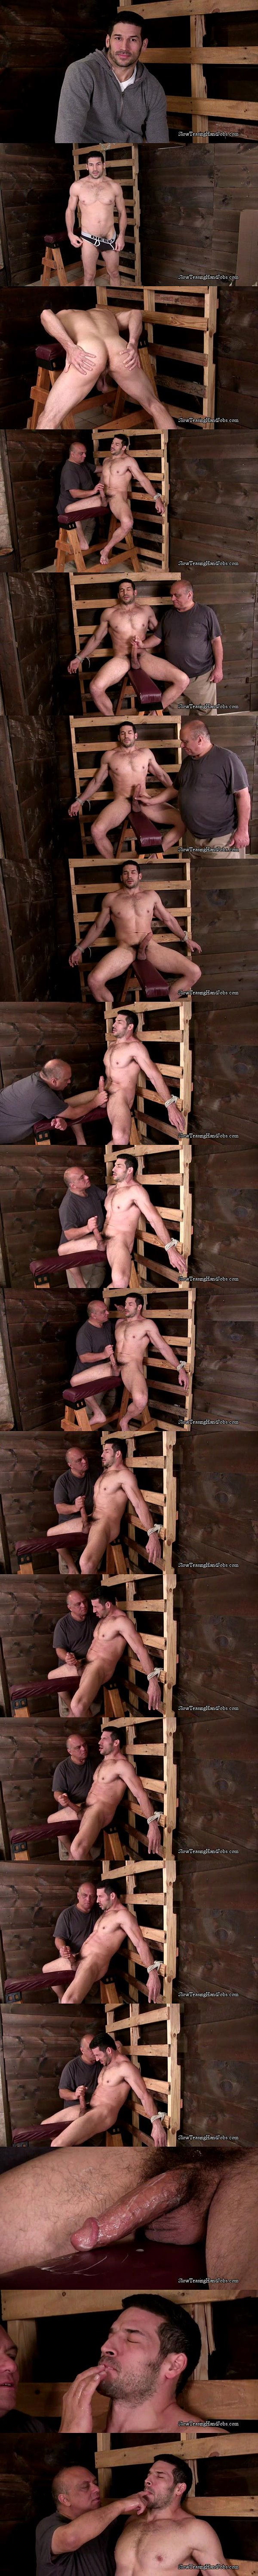 Italian muscle hunk Greg (aka Leo Giamani) slowly jerked off at Slowteasinghandjobs 02